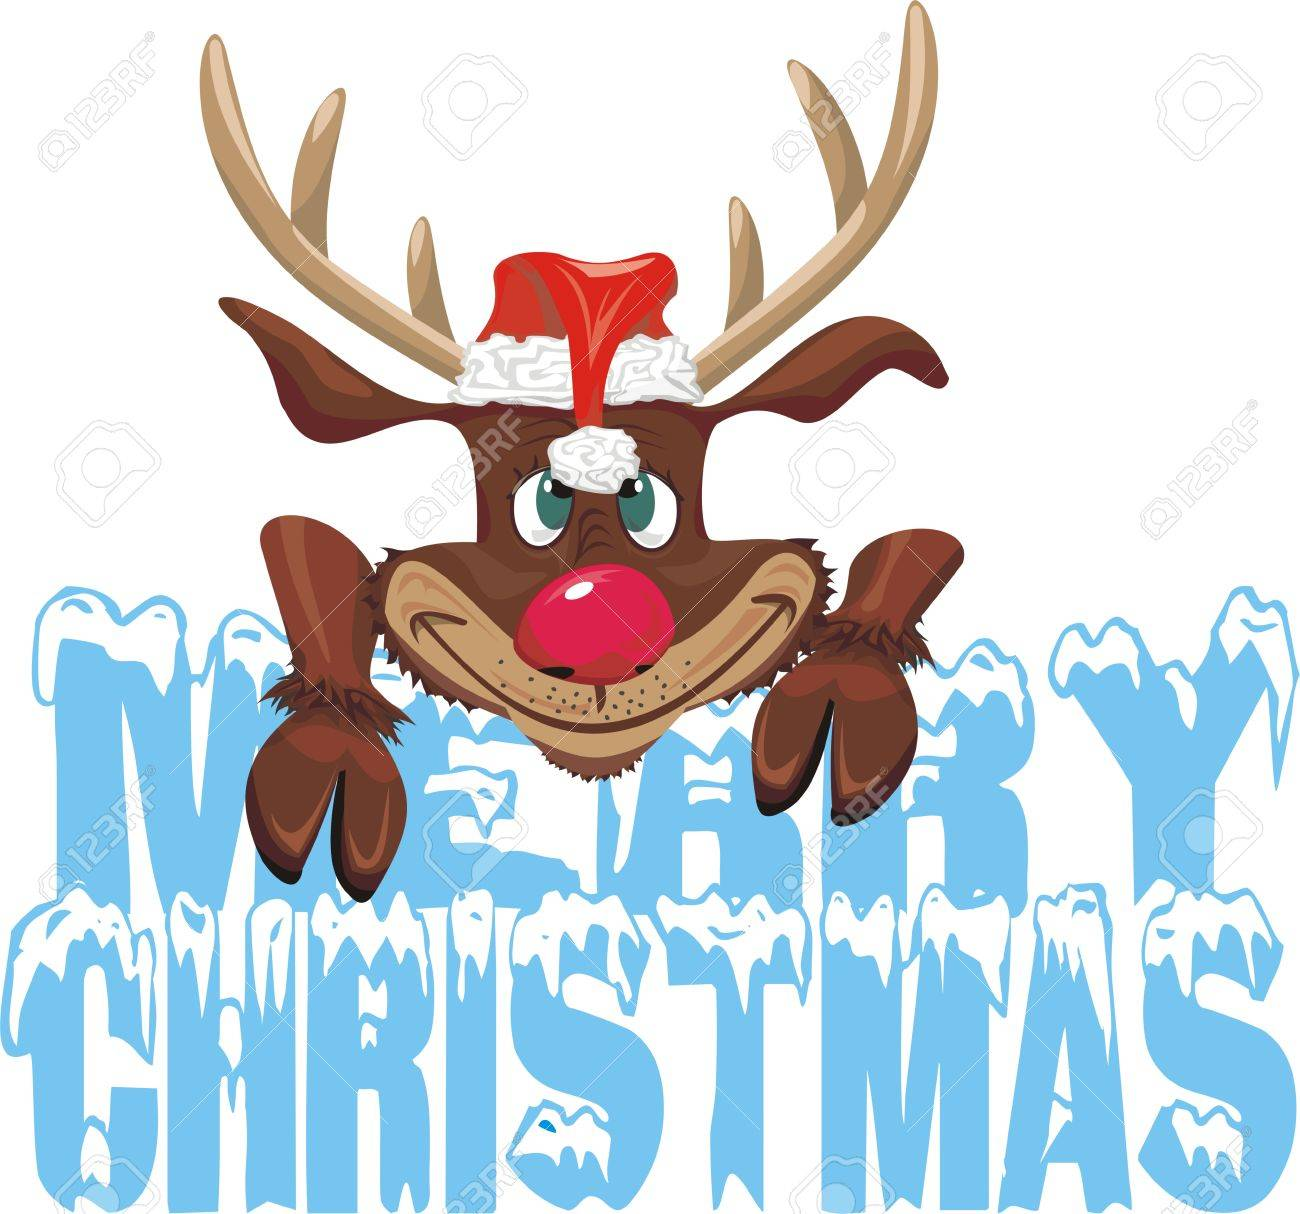 Red Nosed Reideer - Merry Christmas Royalty Free Cliparts, Vectors ...